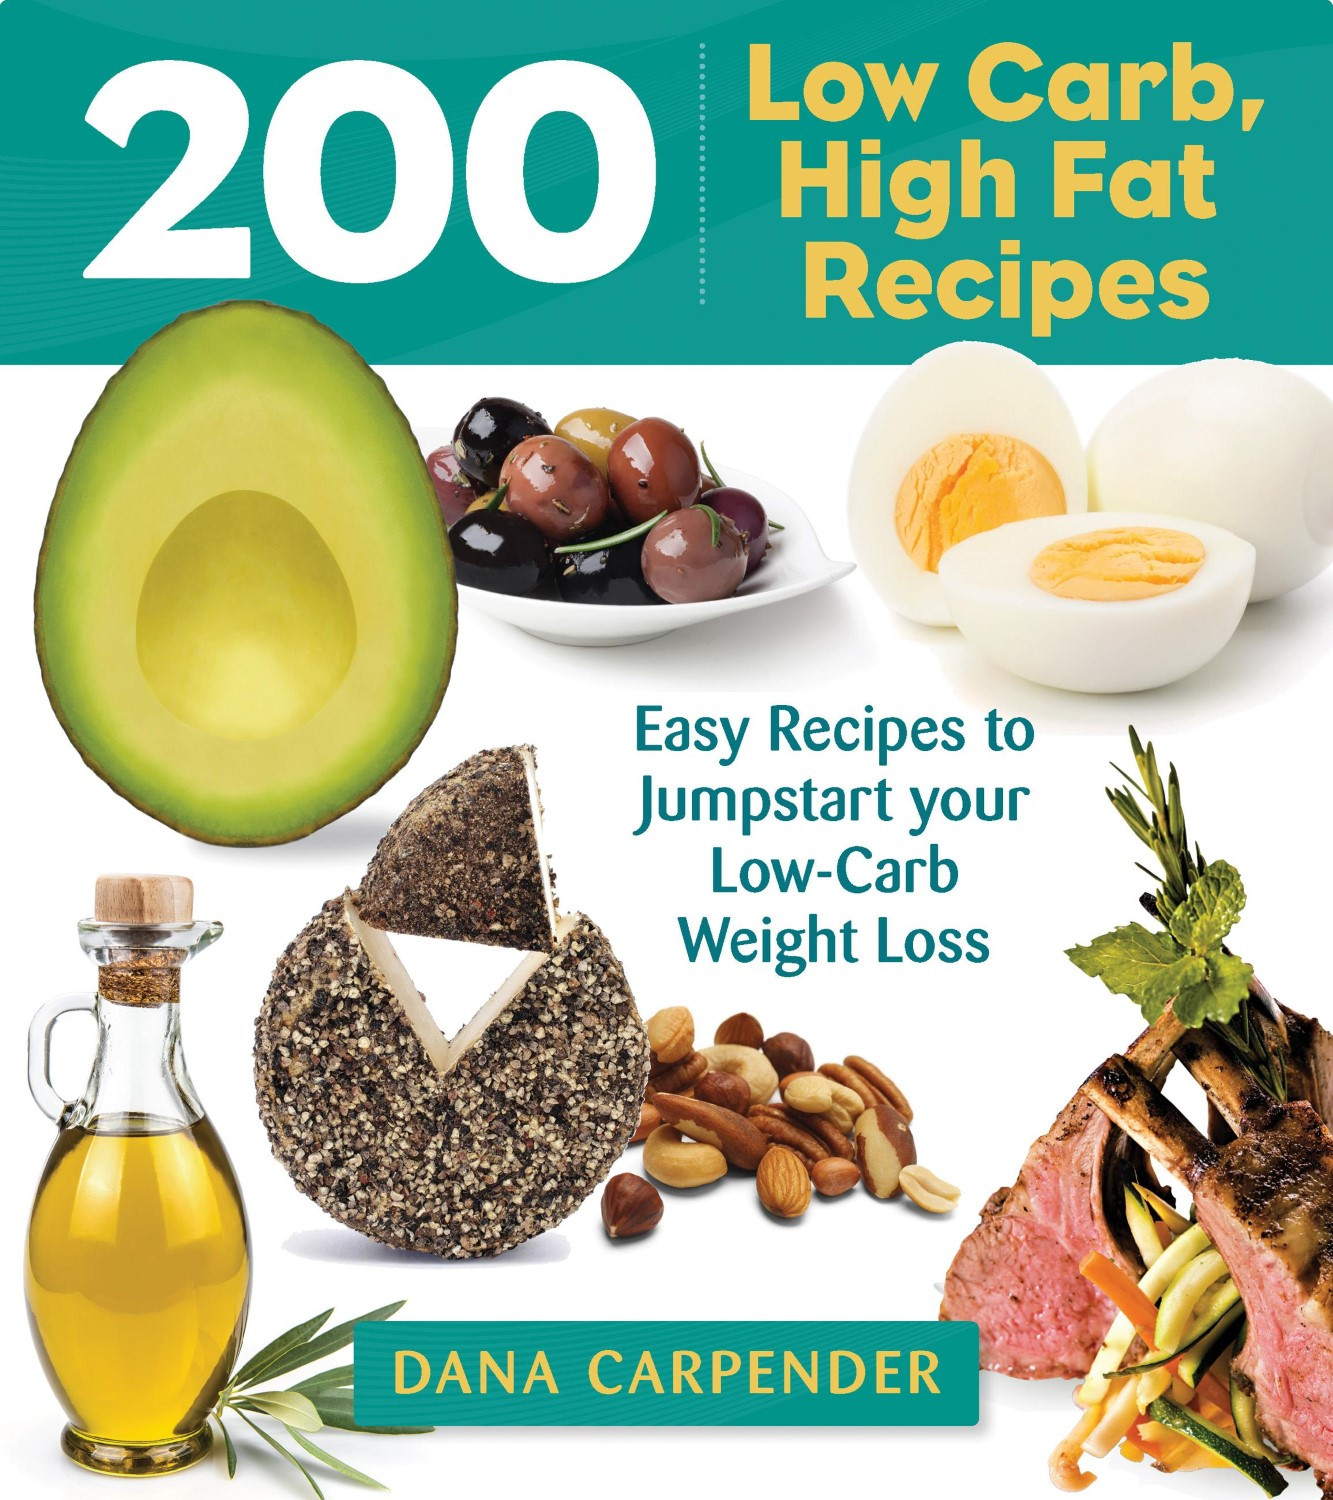 Healthy Low Fat Recipes For Weight Loss  200 Low Carb High Fat Recipes Easy Recipes to Jumpstart